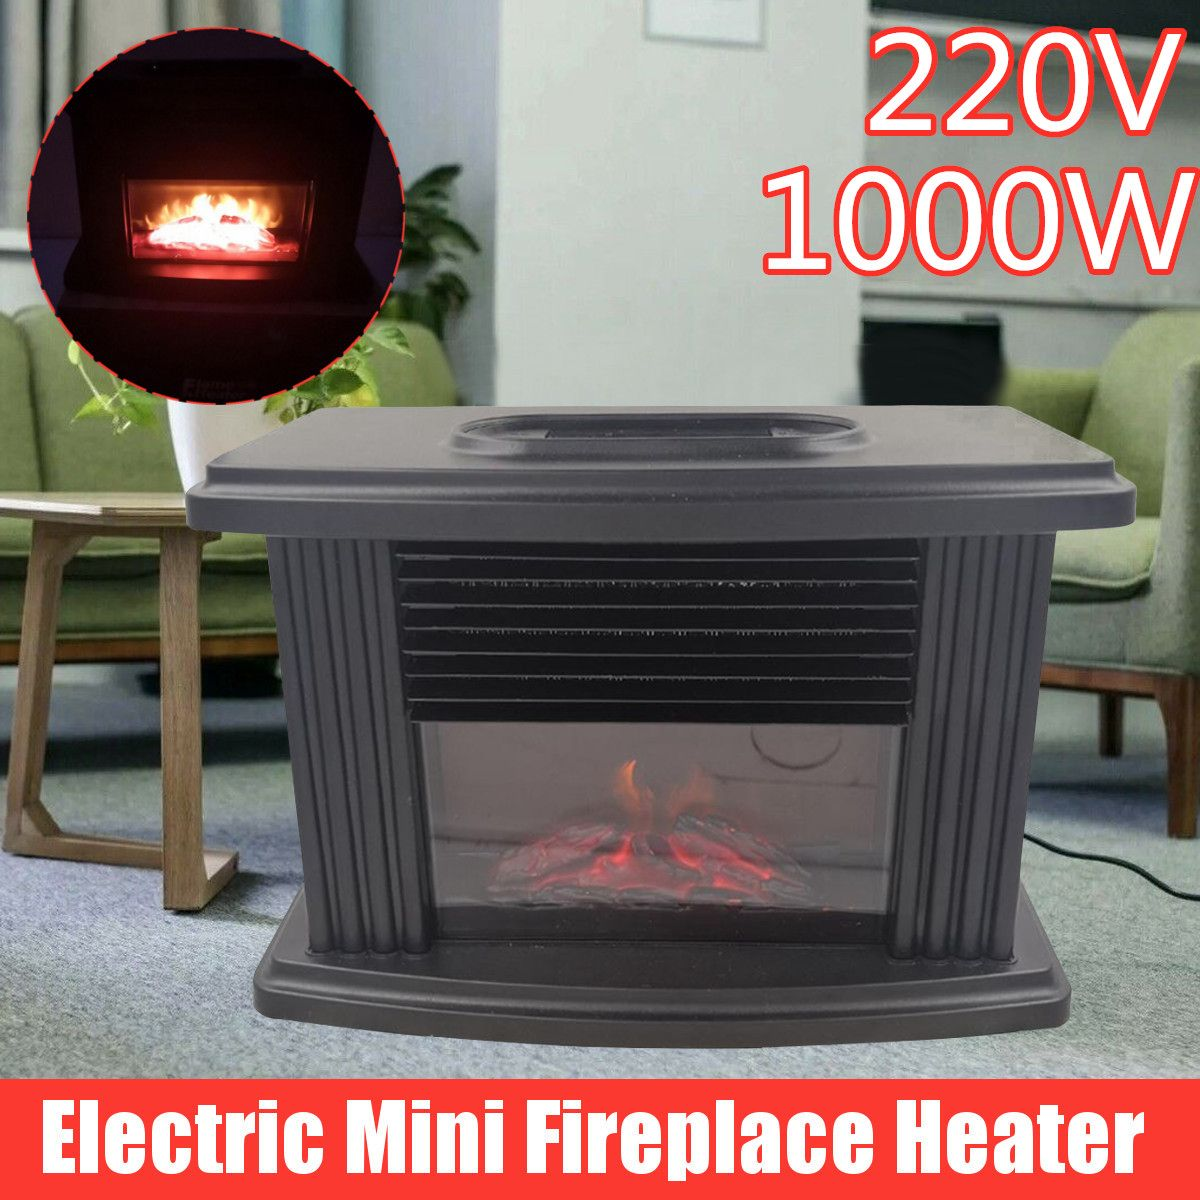 1000W Portable Desktop Electric Fireplace Heater With Log Flame Effect Warm Air Heater With Overheating Power Off Protection